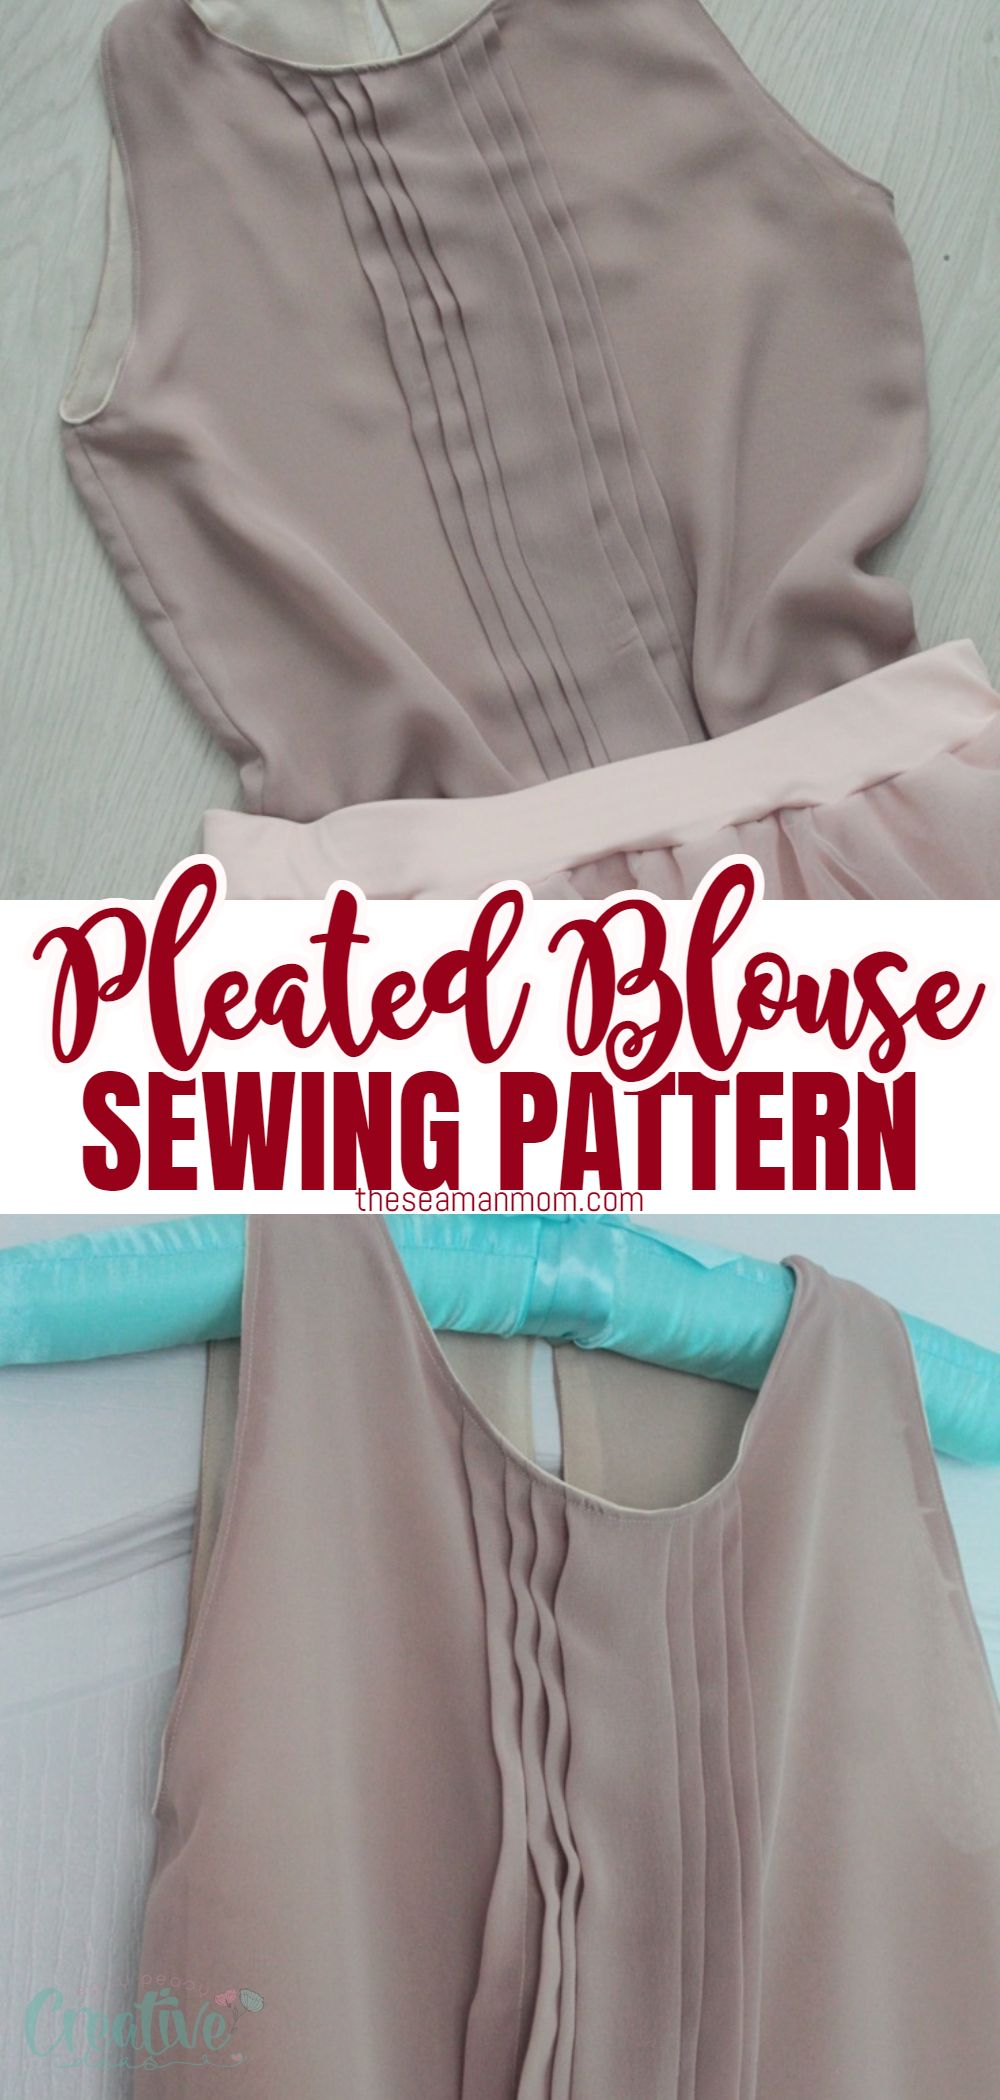 Effortlessly incorporate a romantic design into your every day style with a simple but adorable blouse with pleats. This pleated blouse pattern helps you explore new textures and designs with a unique garment piece! via @petroneagu